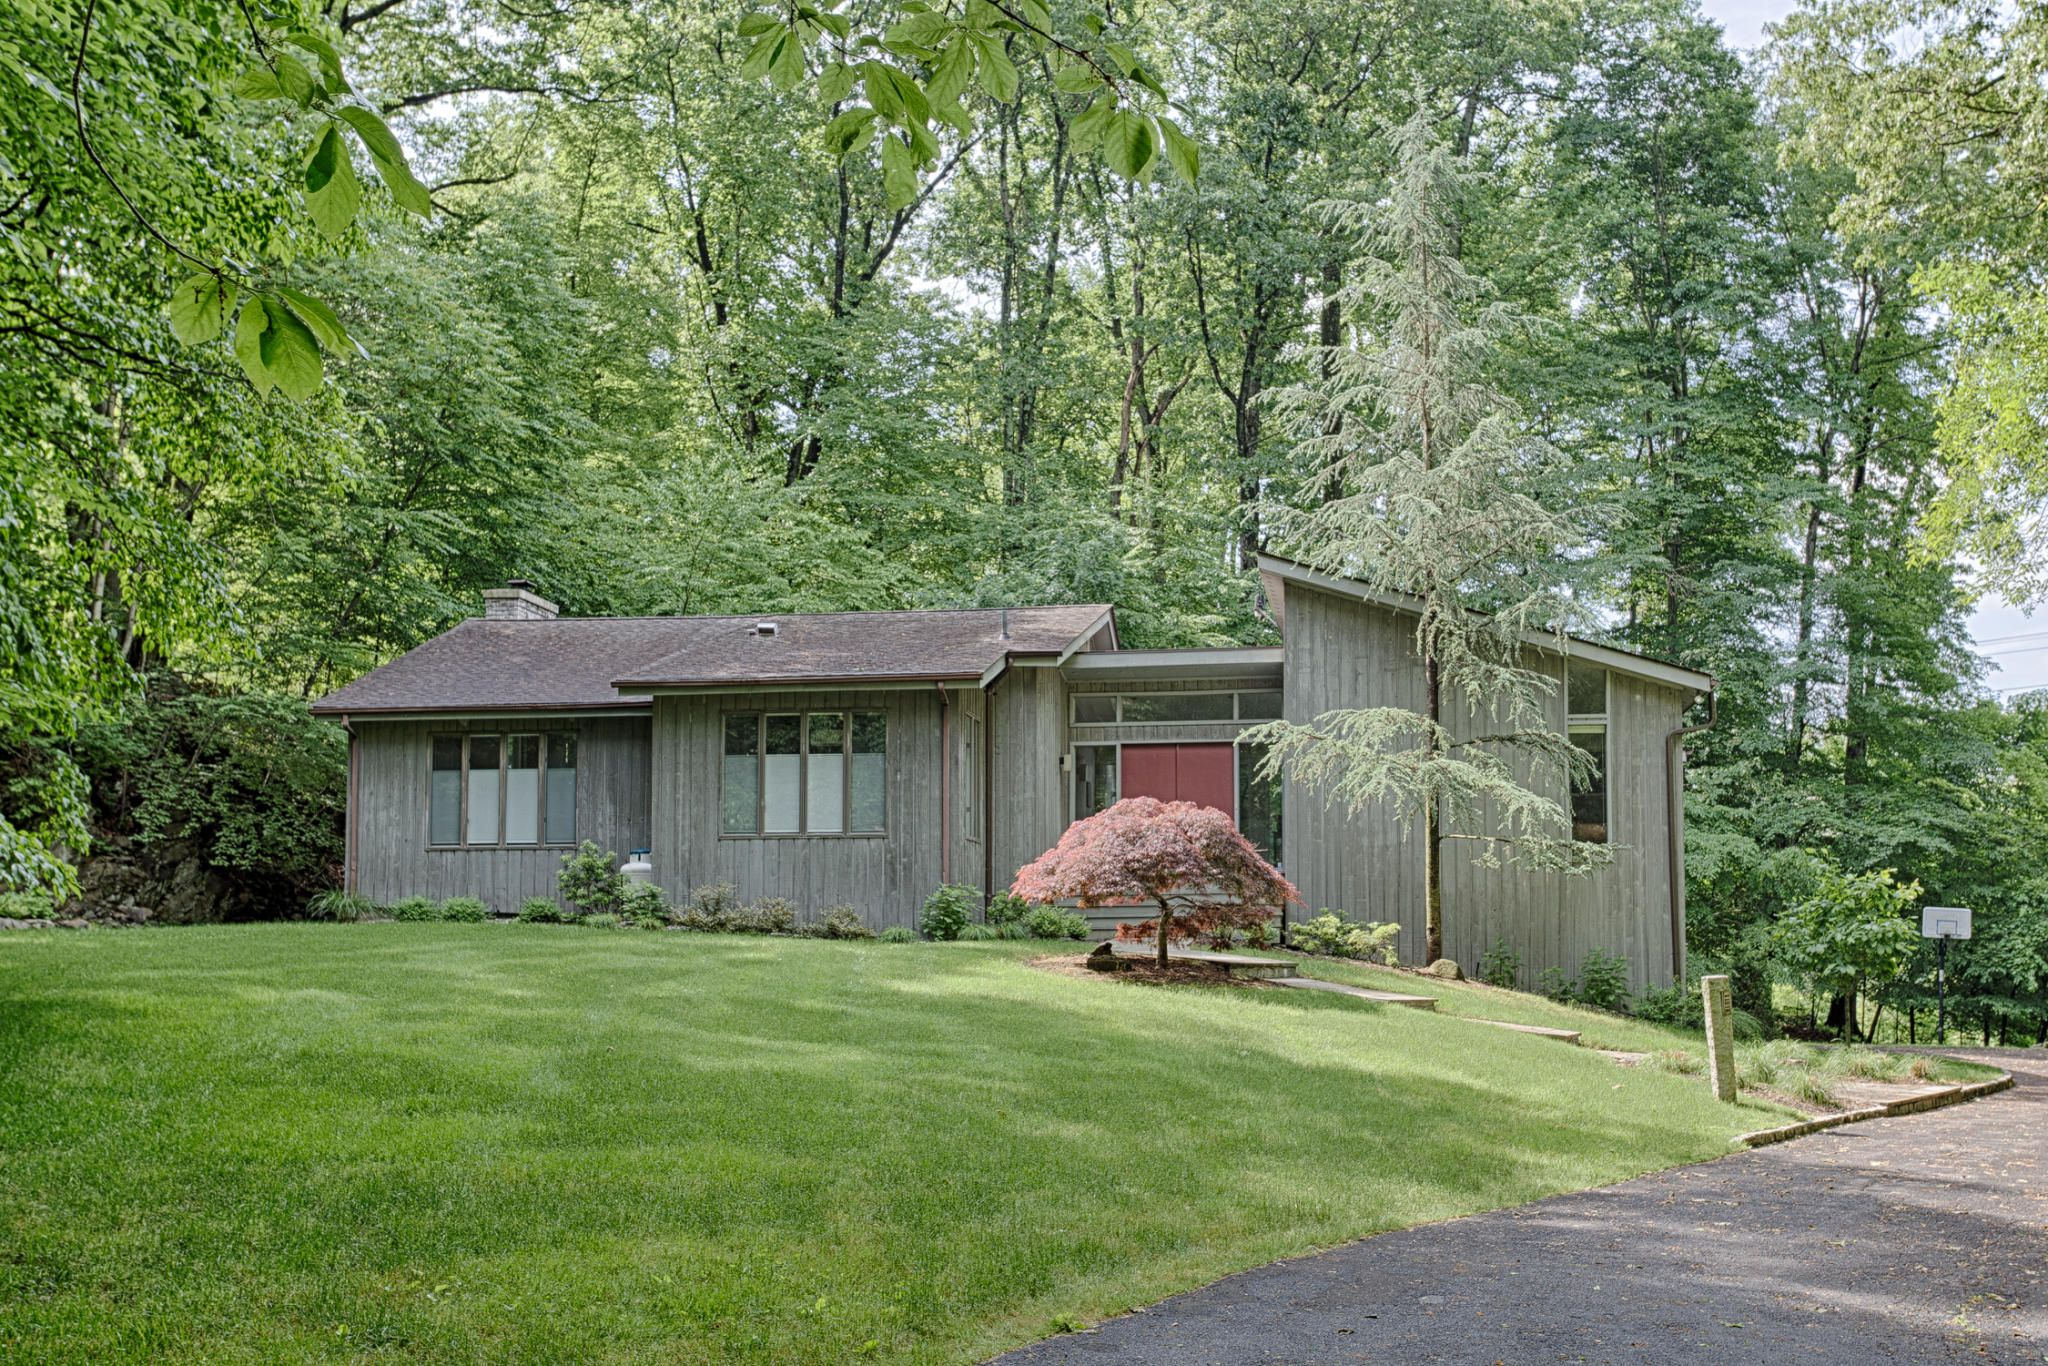 19 Sassi Drive Croton On Hudson Ny For Sale Trulia Trulia